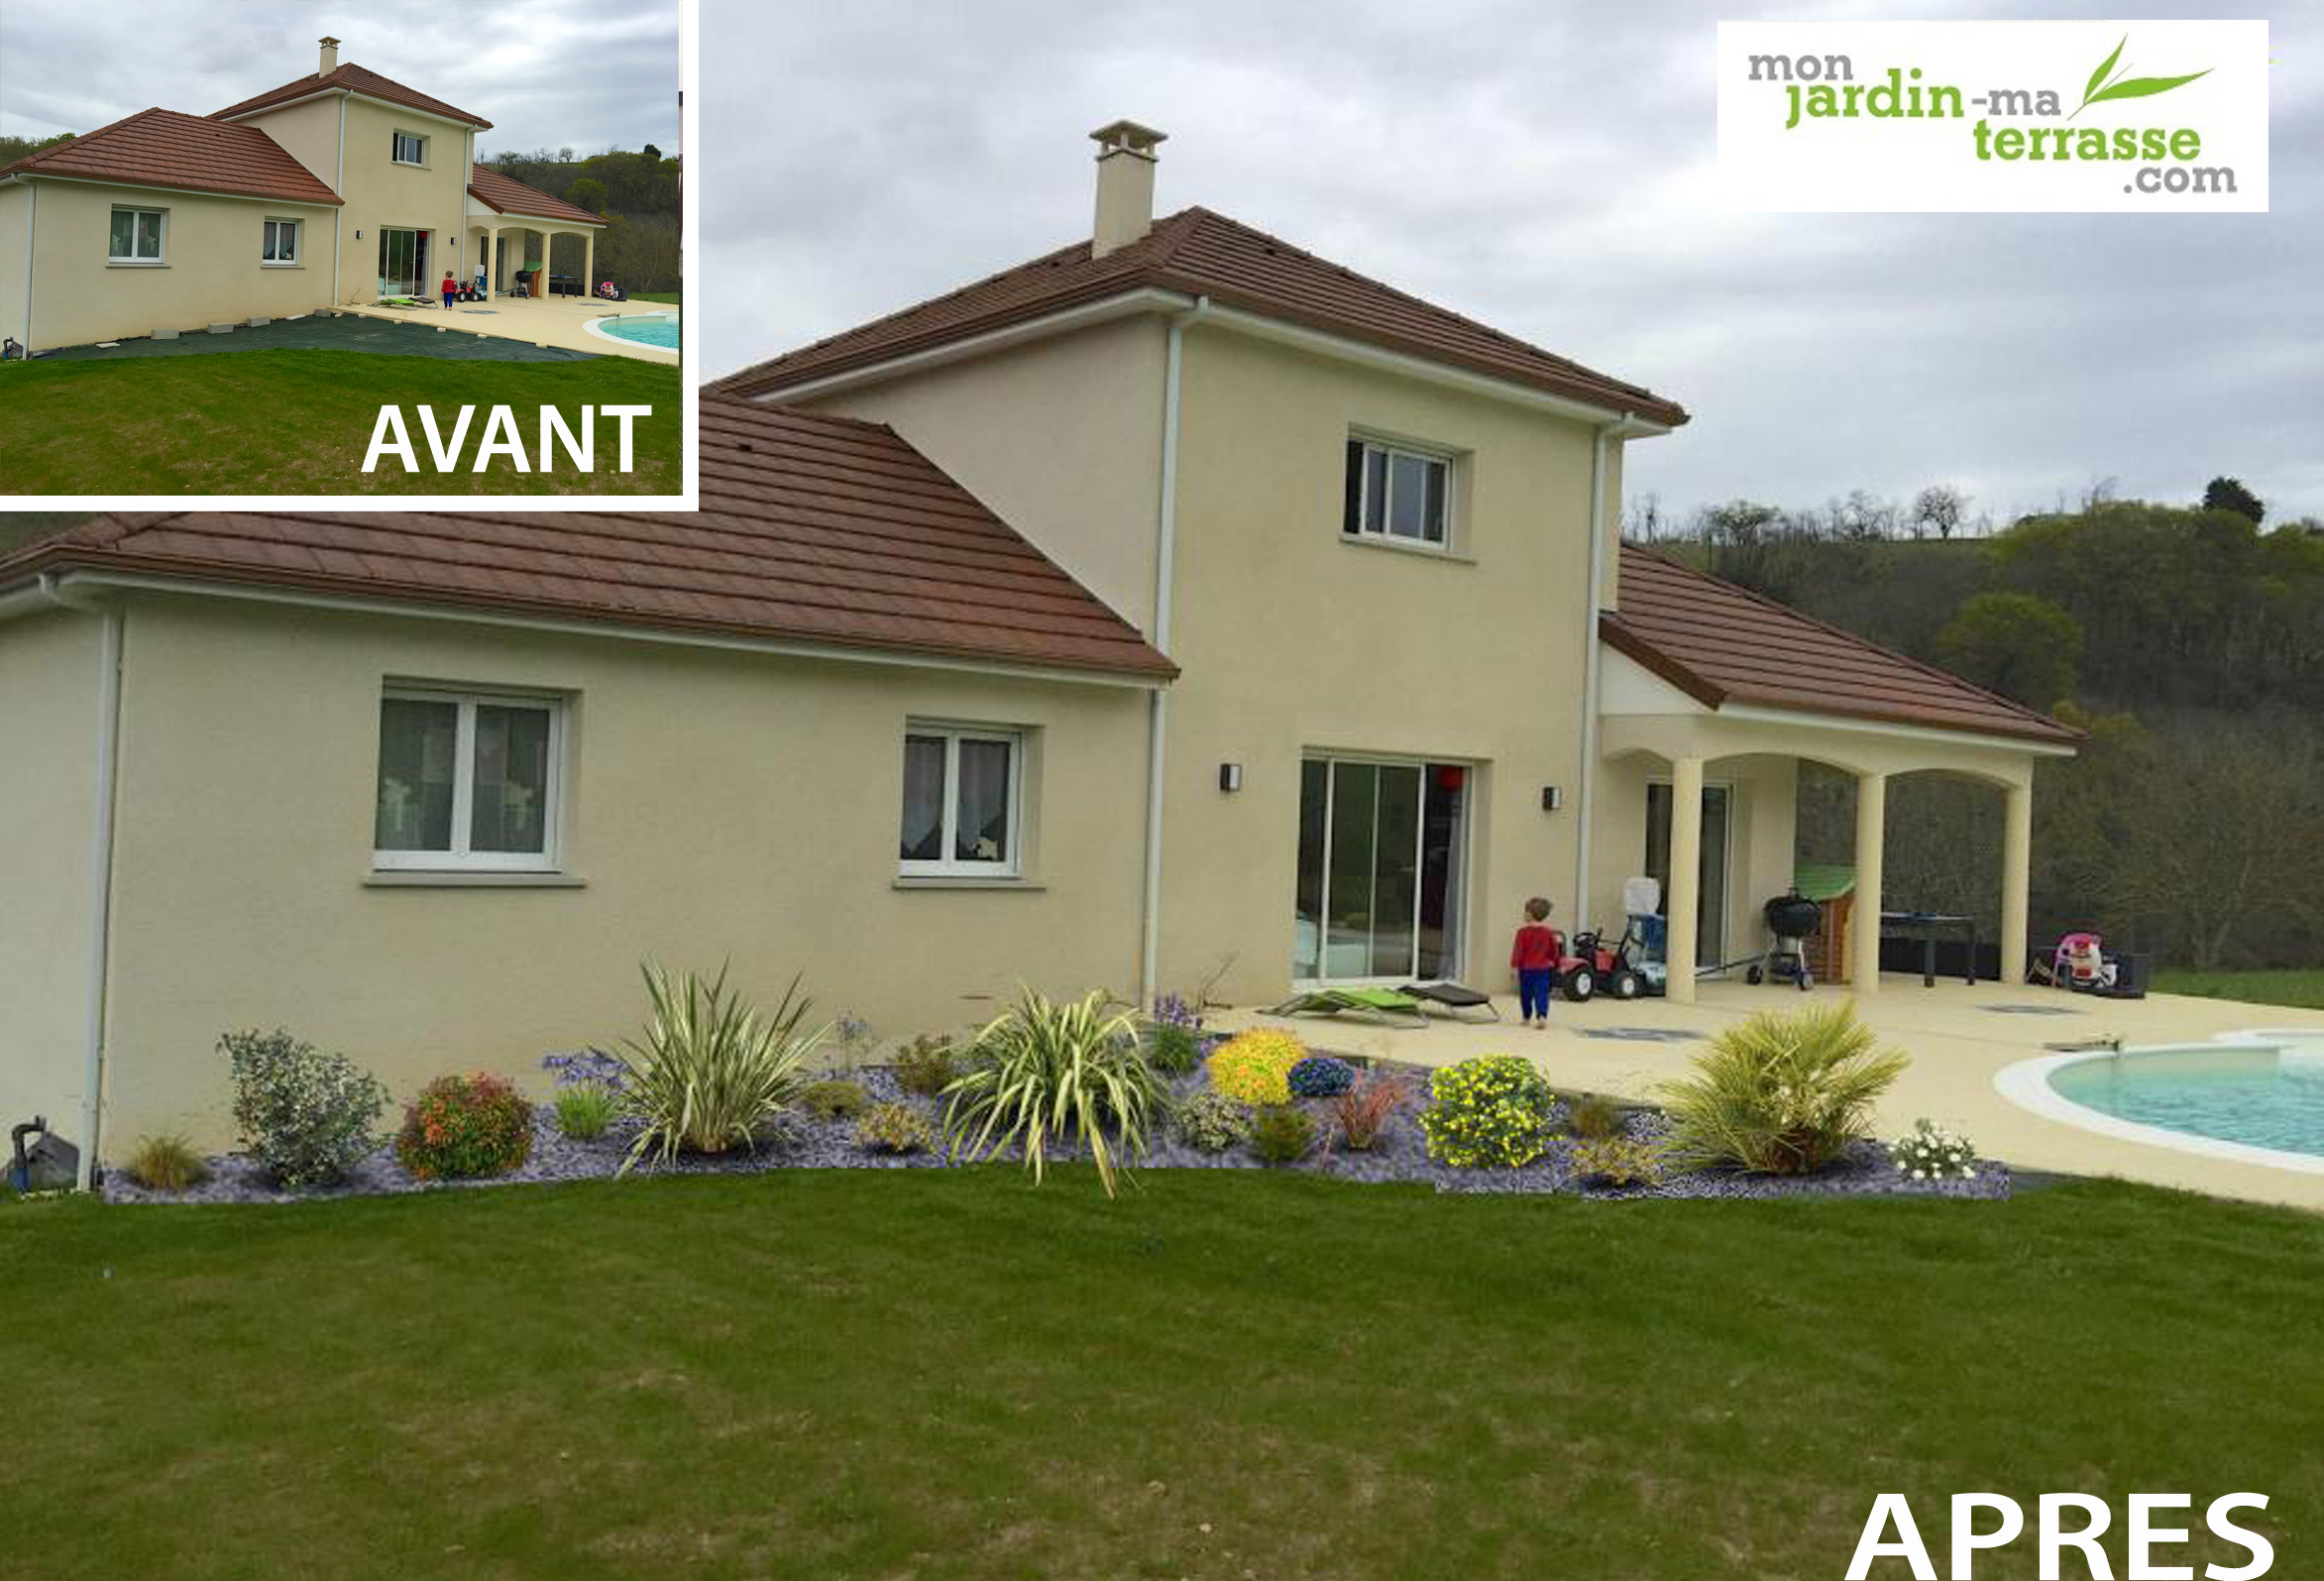 Am nagement ext rieur devant une maison monjardin for Amenagement exterieur maison terrasse